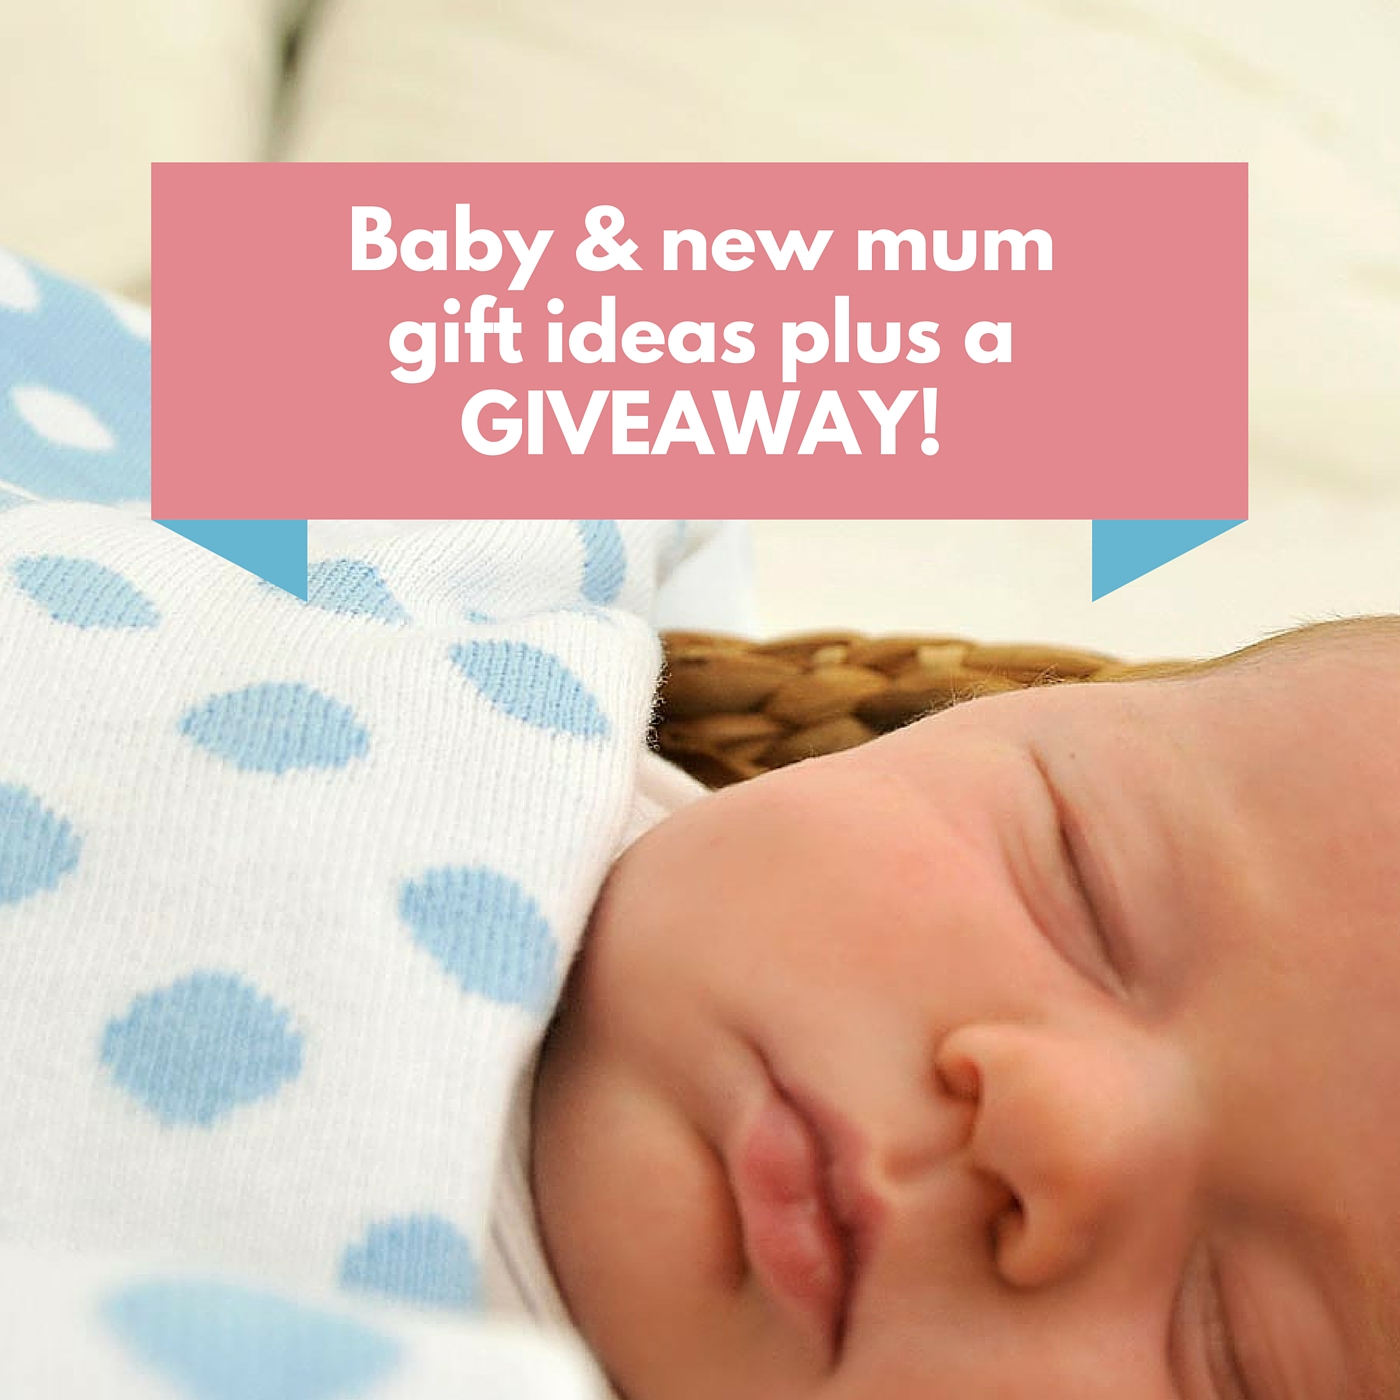 Baby & new mum gift ideas plus a GIVEAWAY!